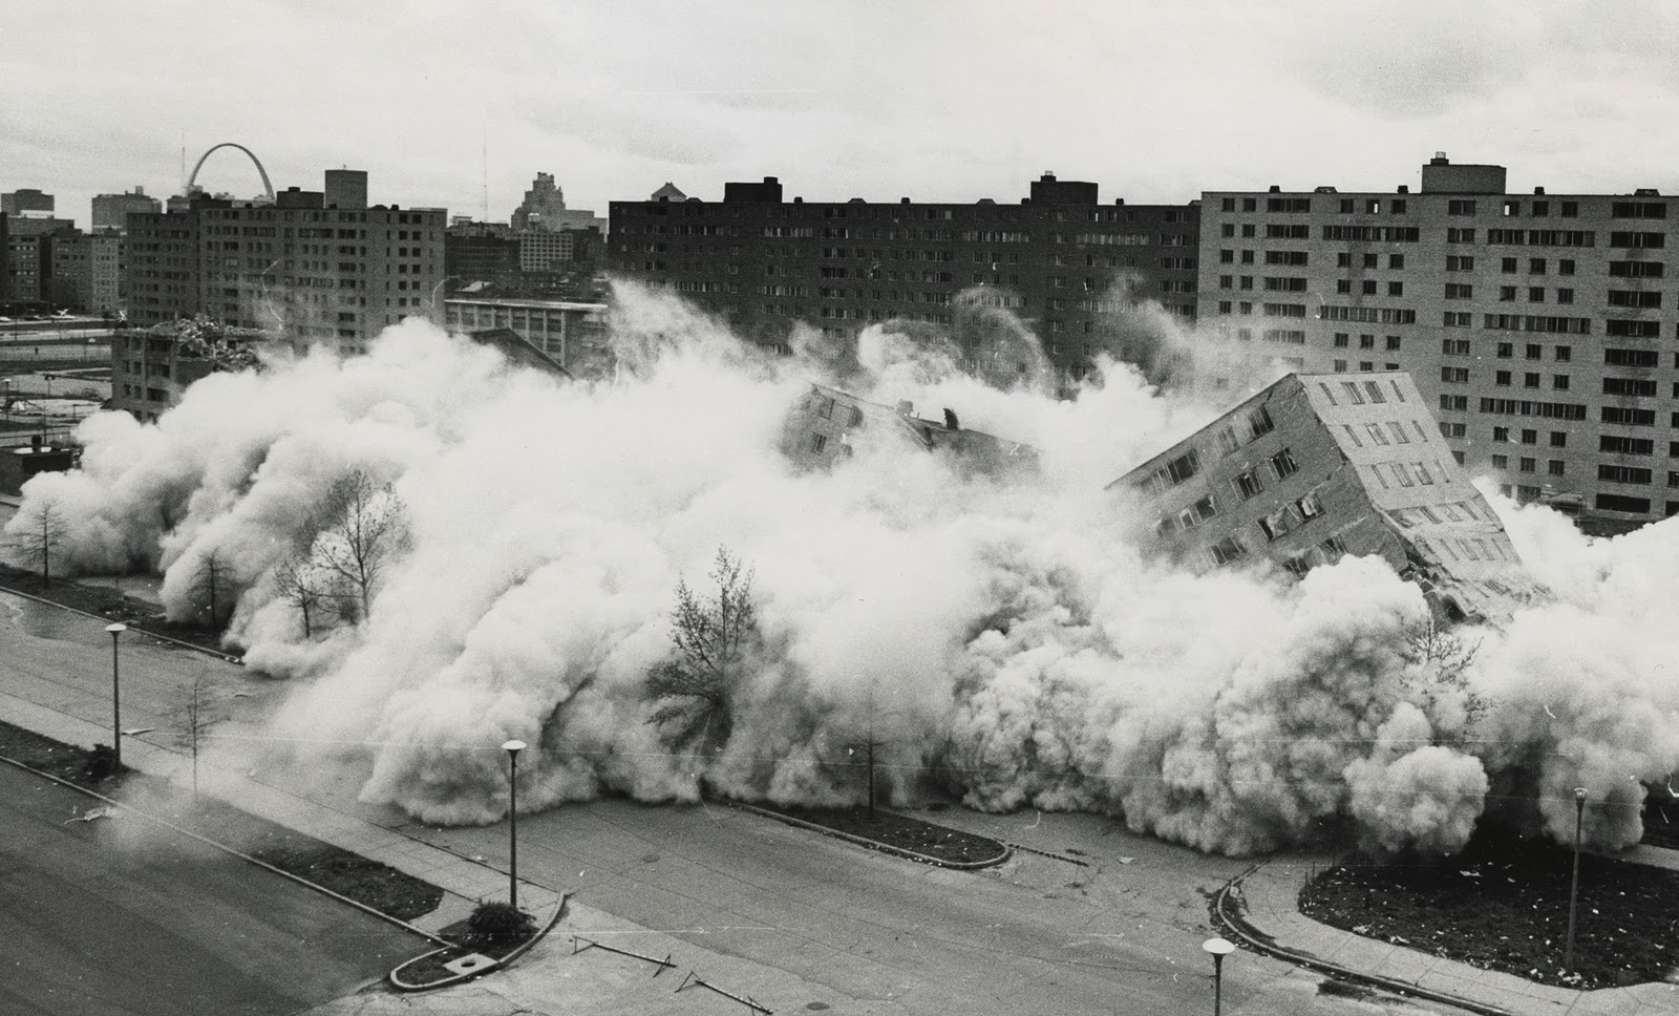 The demolition of Pruitt-Igoe